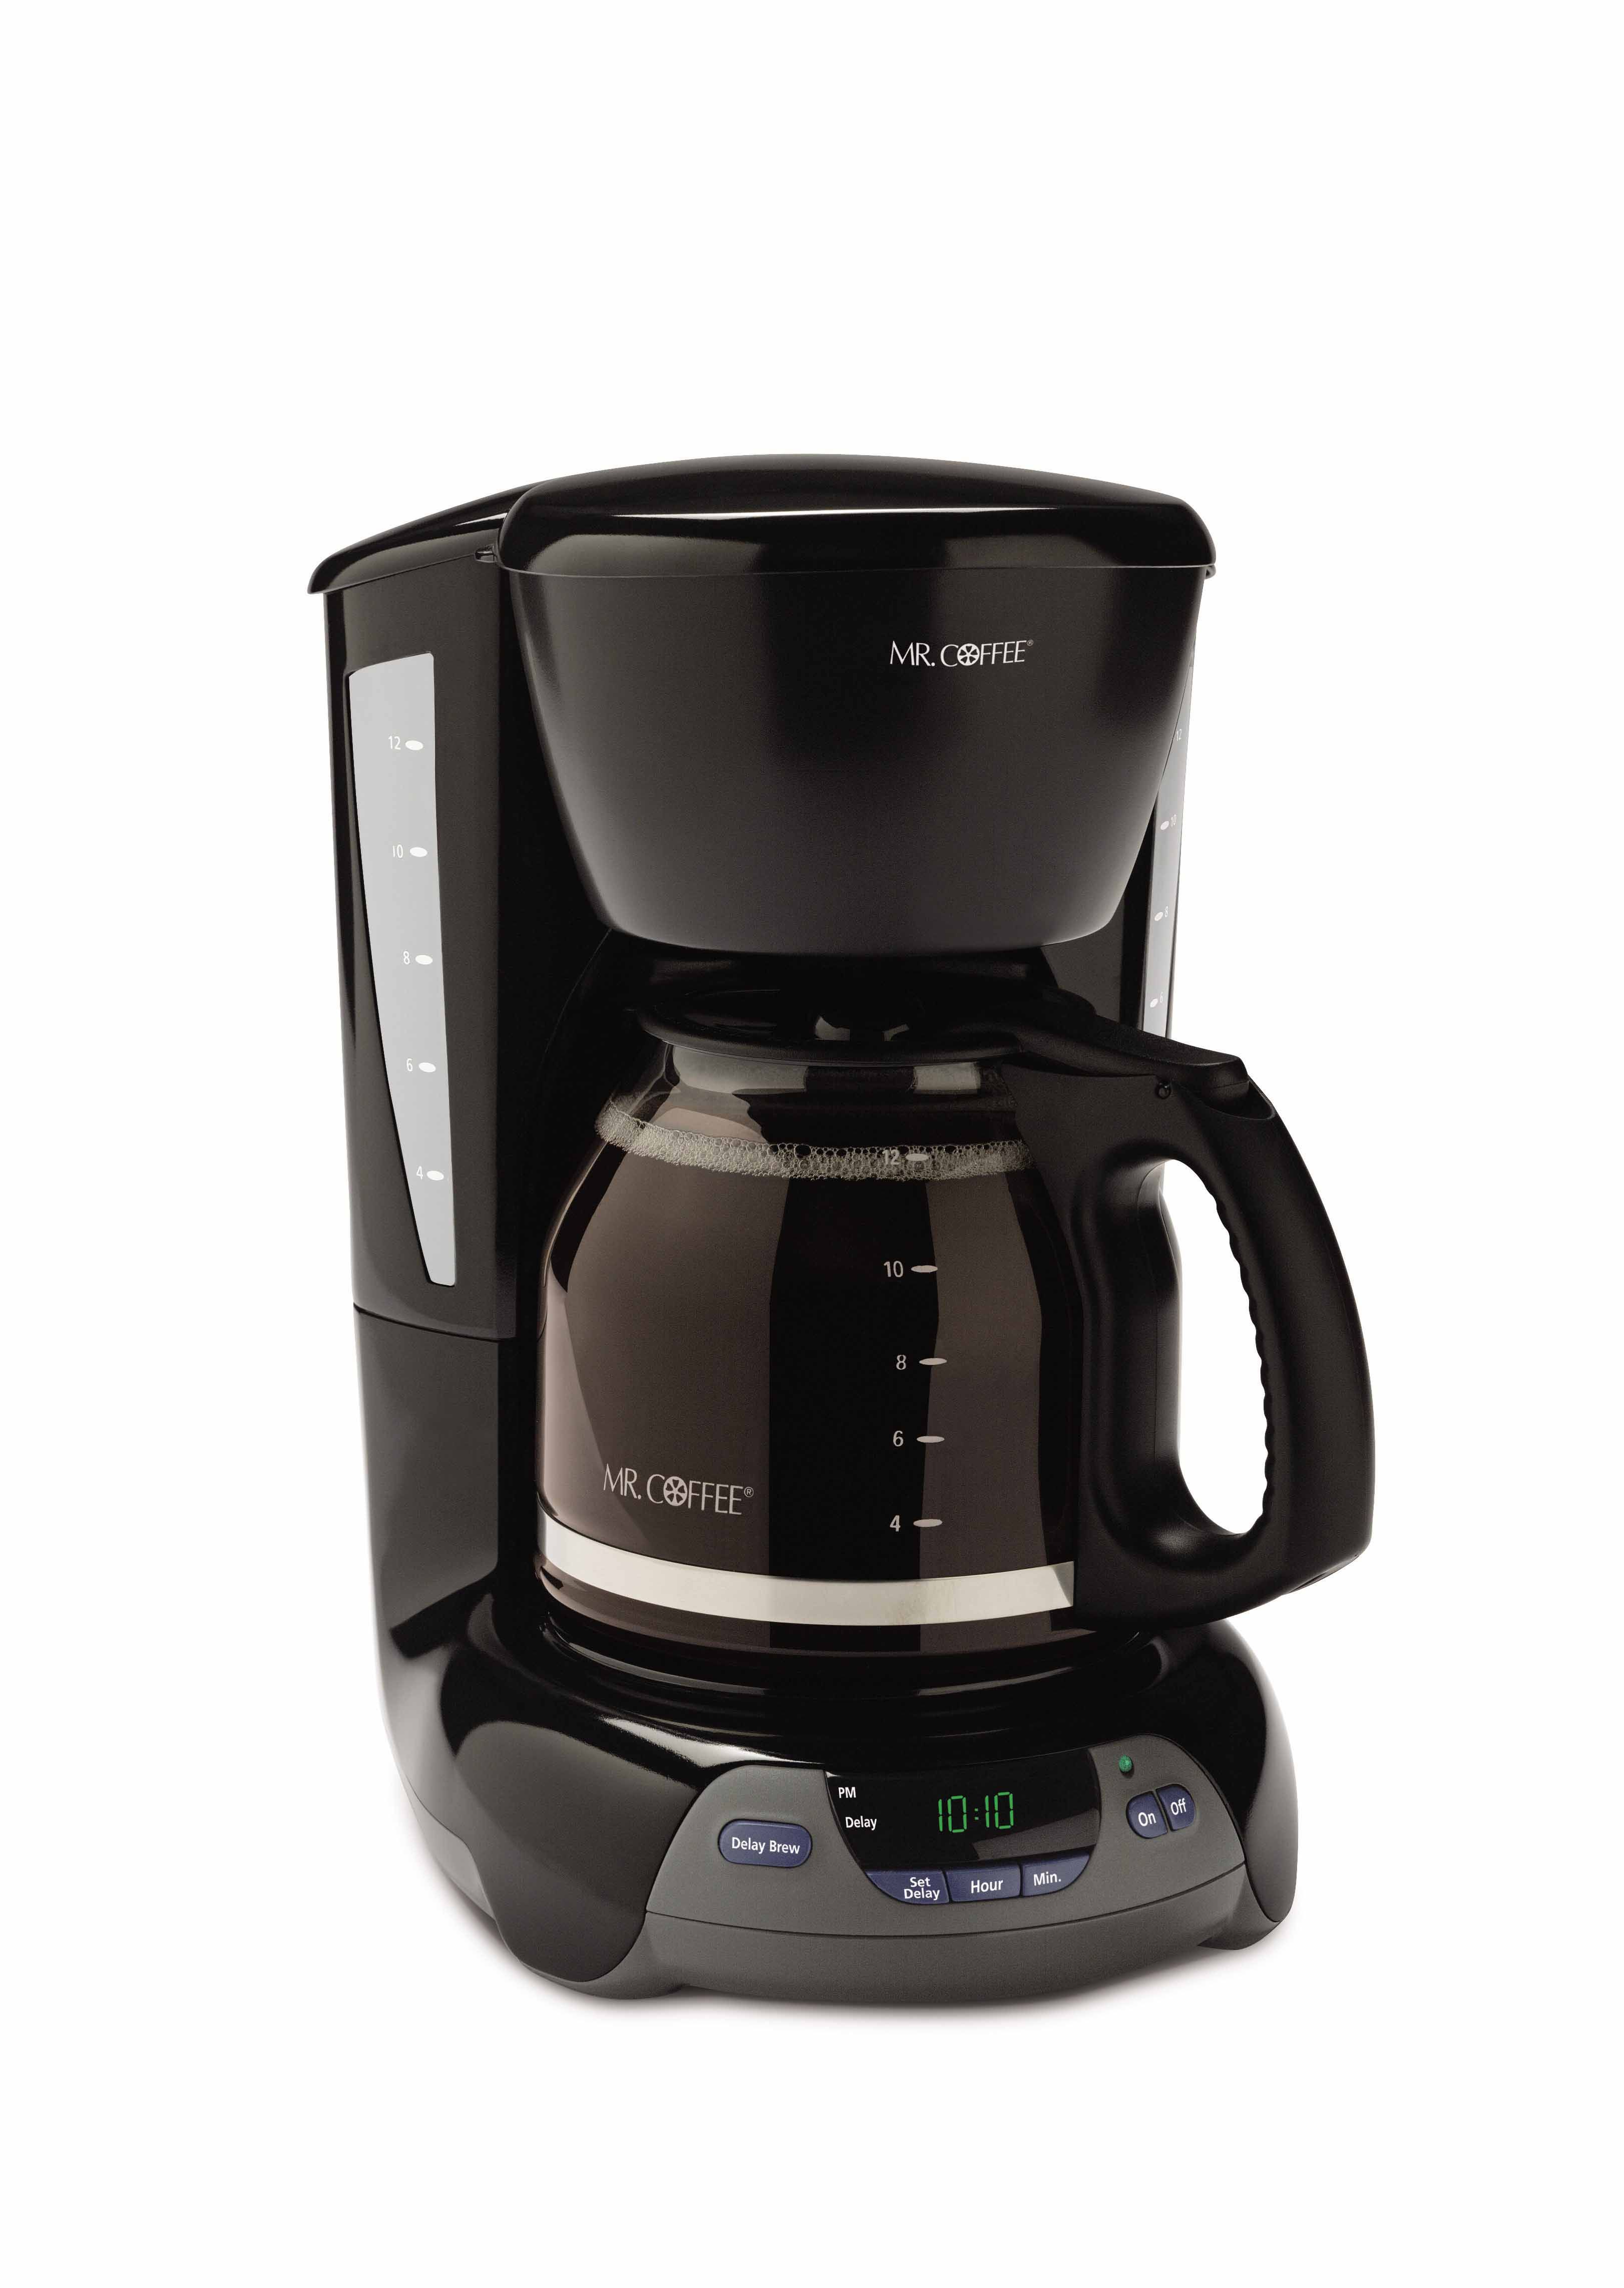 Our Dropship Cost Is Extremely Competitive On This Mr Coffee